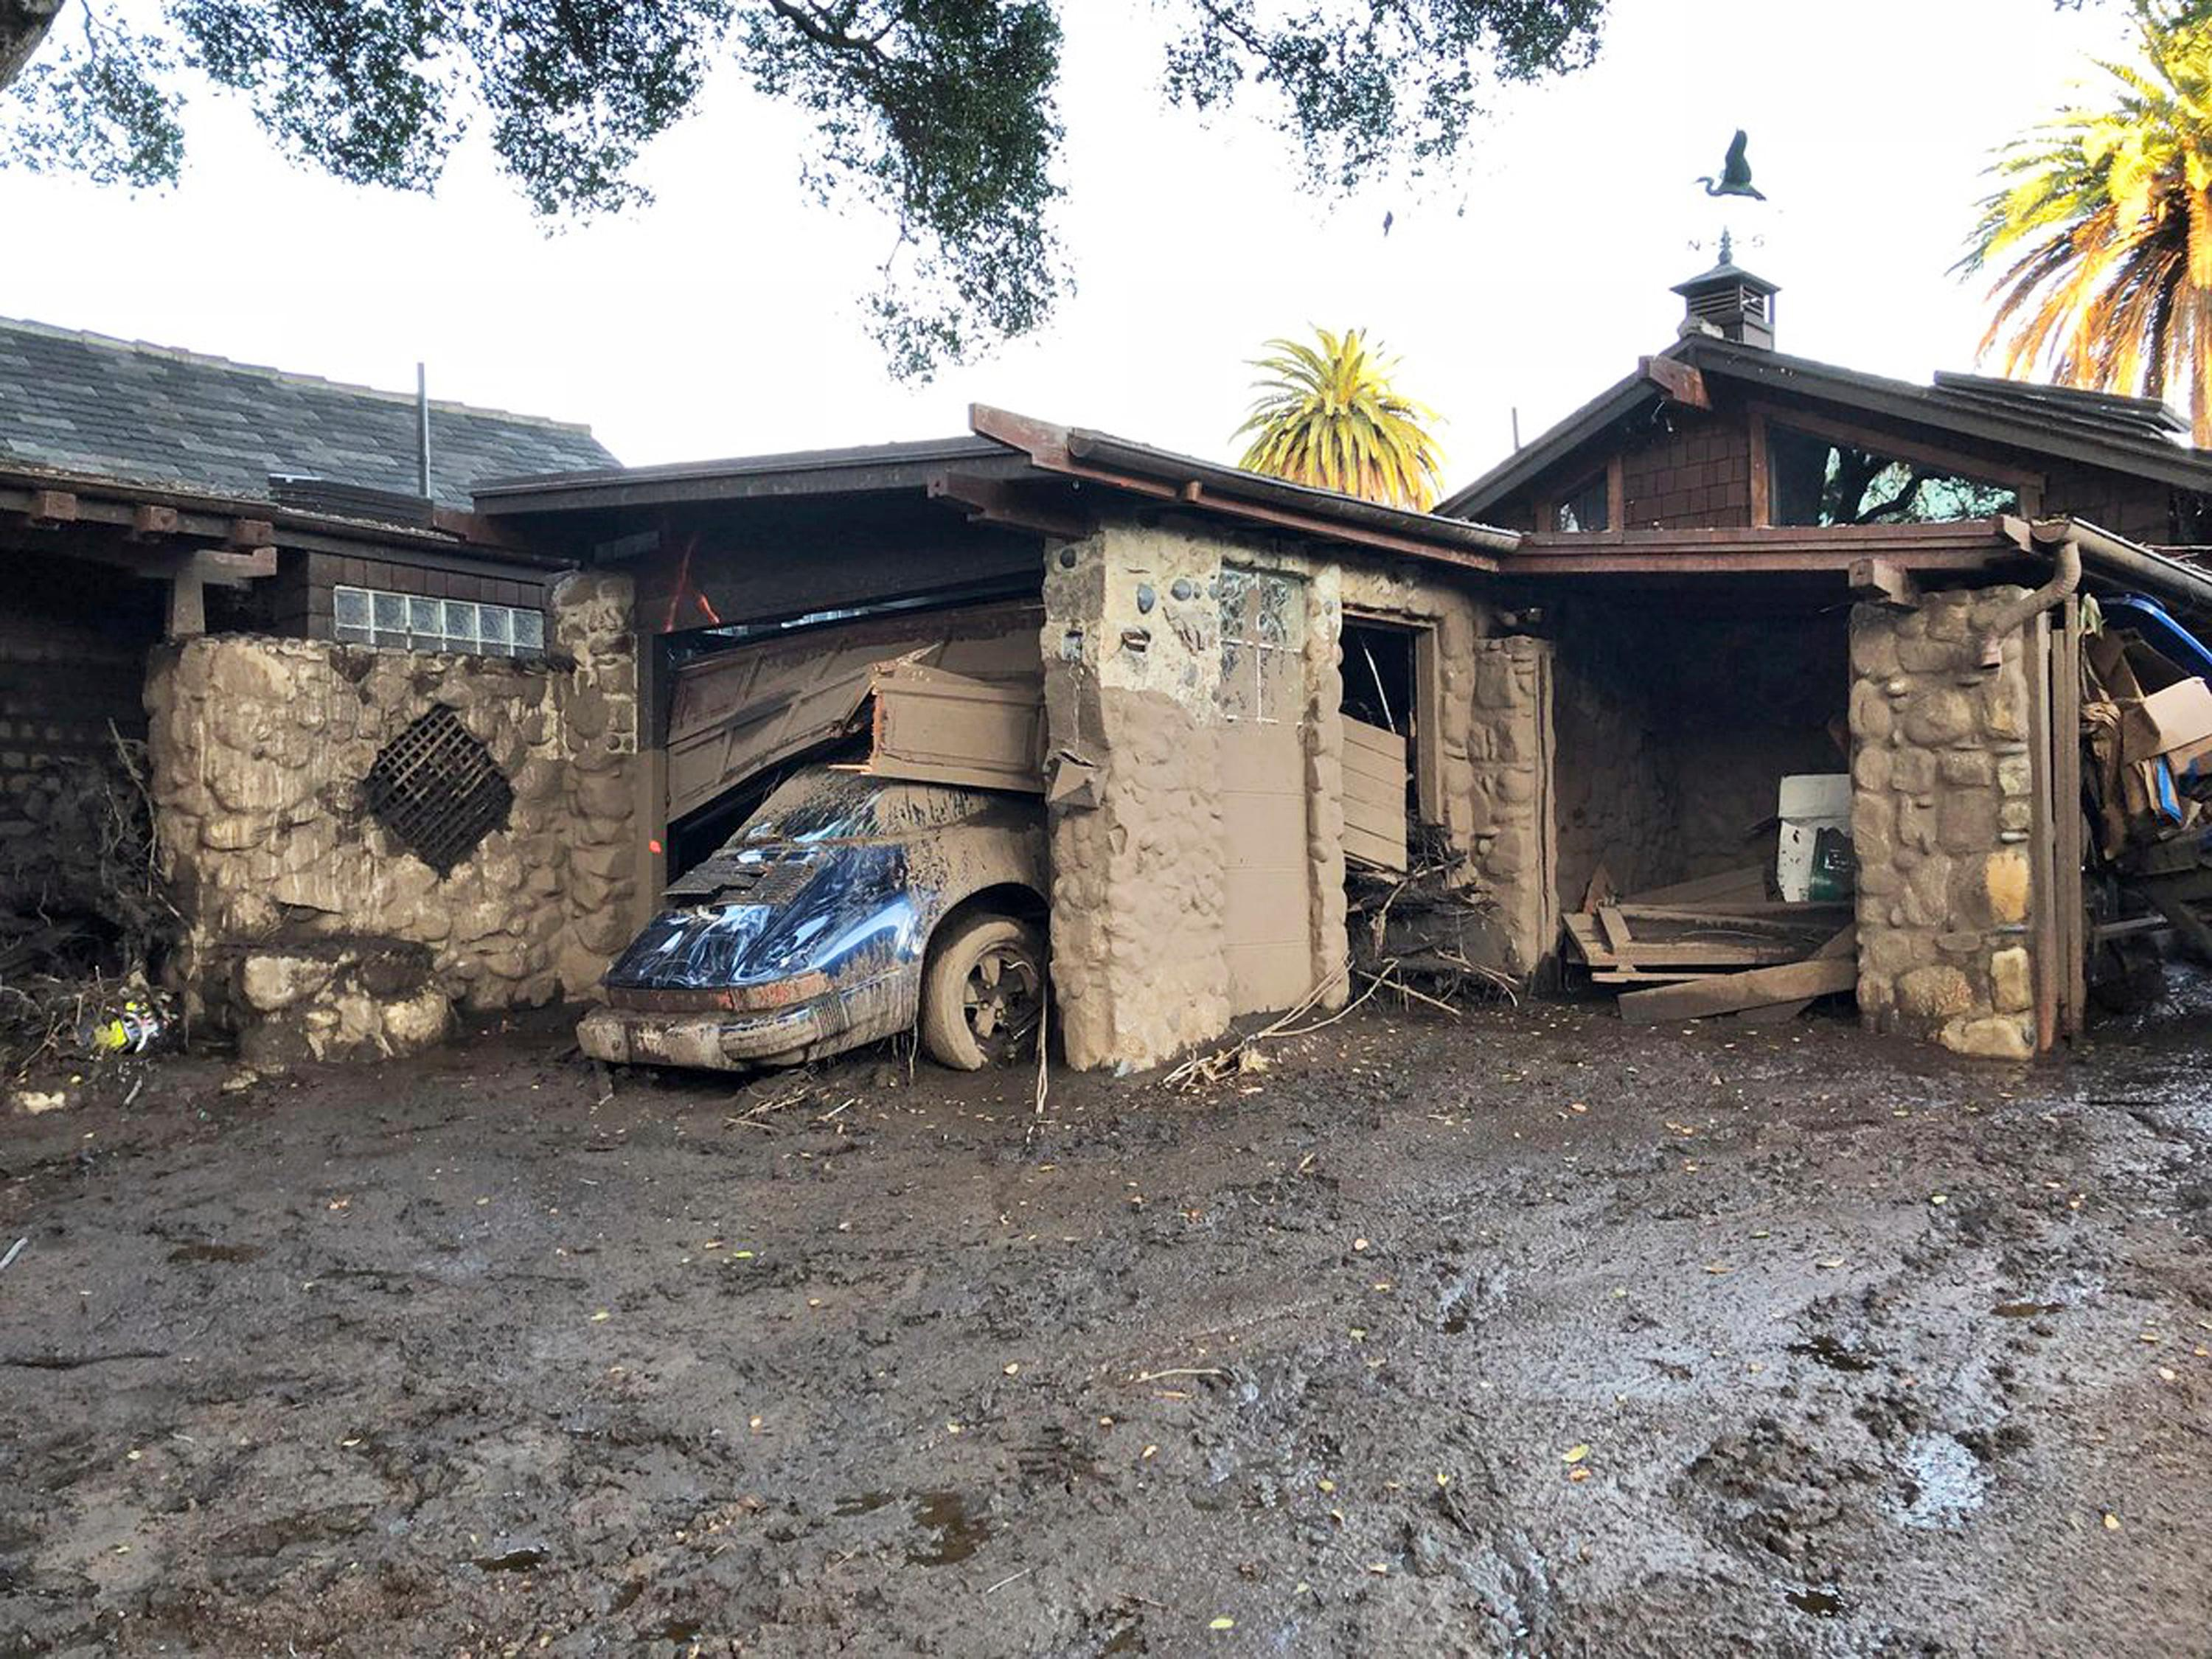 This photo provided by the Santa Barbara County Fire Department shows damage from mud, boulders, and debris that destroyed homes that lined Montecito Creek near East Valley Road in Montecito, Calif., Wednesday, Jan. 10, 2018. Anxious family members awaited word on loved ones Wednesday as rescue crews searched grimy debris and ruins for more than a dozen people missing after mudslides in Southern California Tuesday destroyed over a 100 houses, swept cars to the beach and left more than a dozen victims dead.  (Mike Eliason/Santa Barbara County Fire Department via AP)